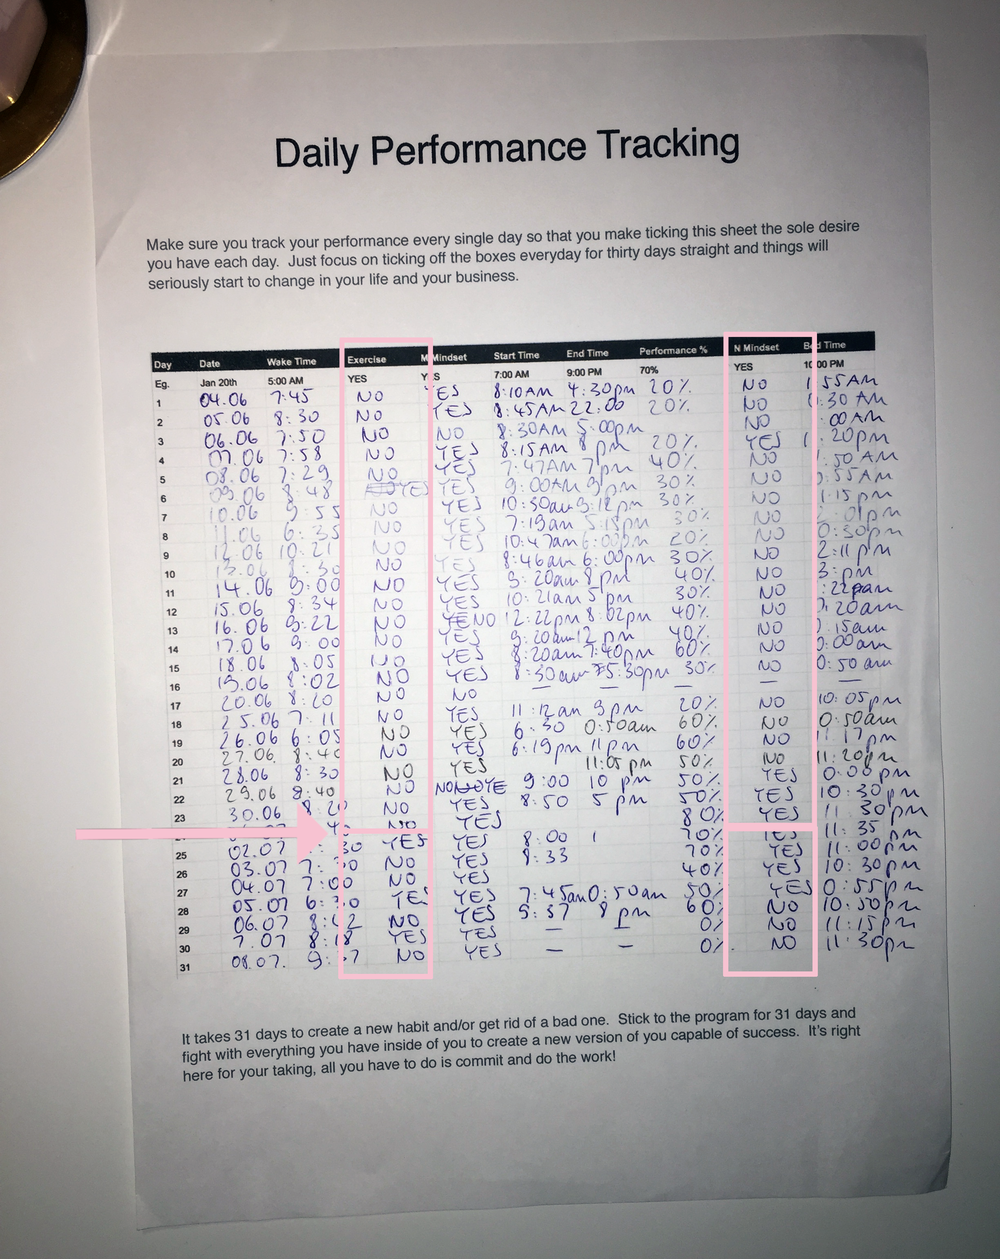 Daily-performance-tracker-01.png